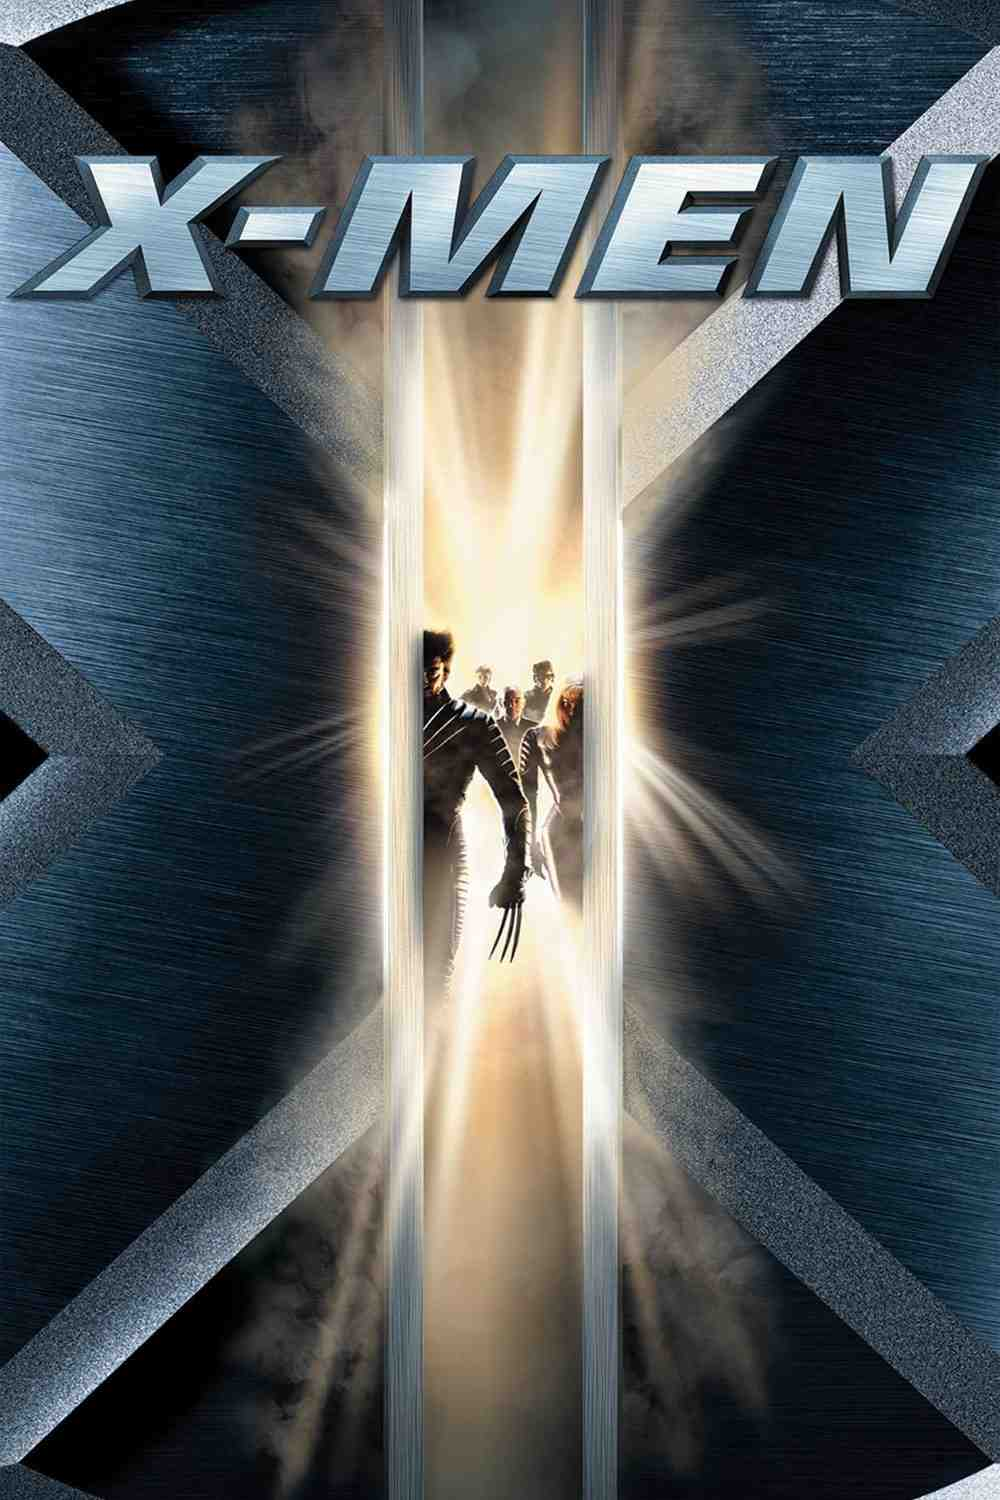 A poster reading X-Men at the top, with silhouettes framed by a large X